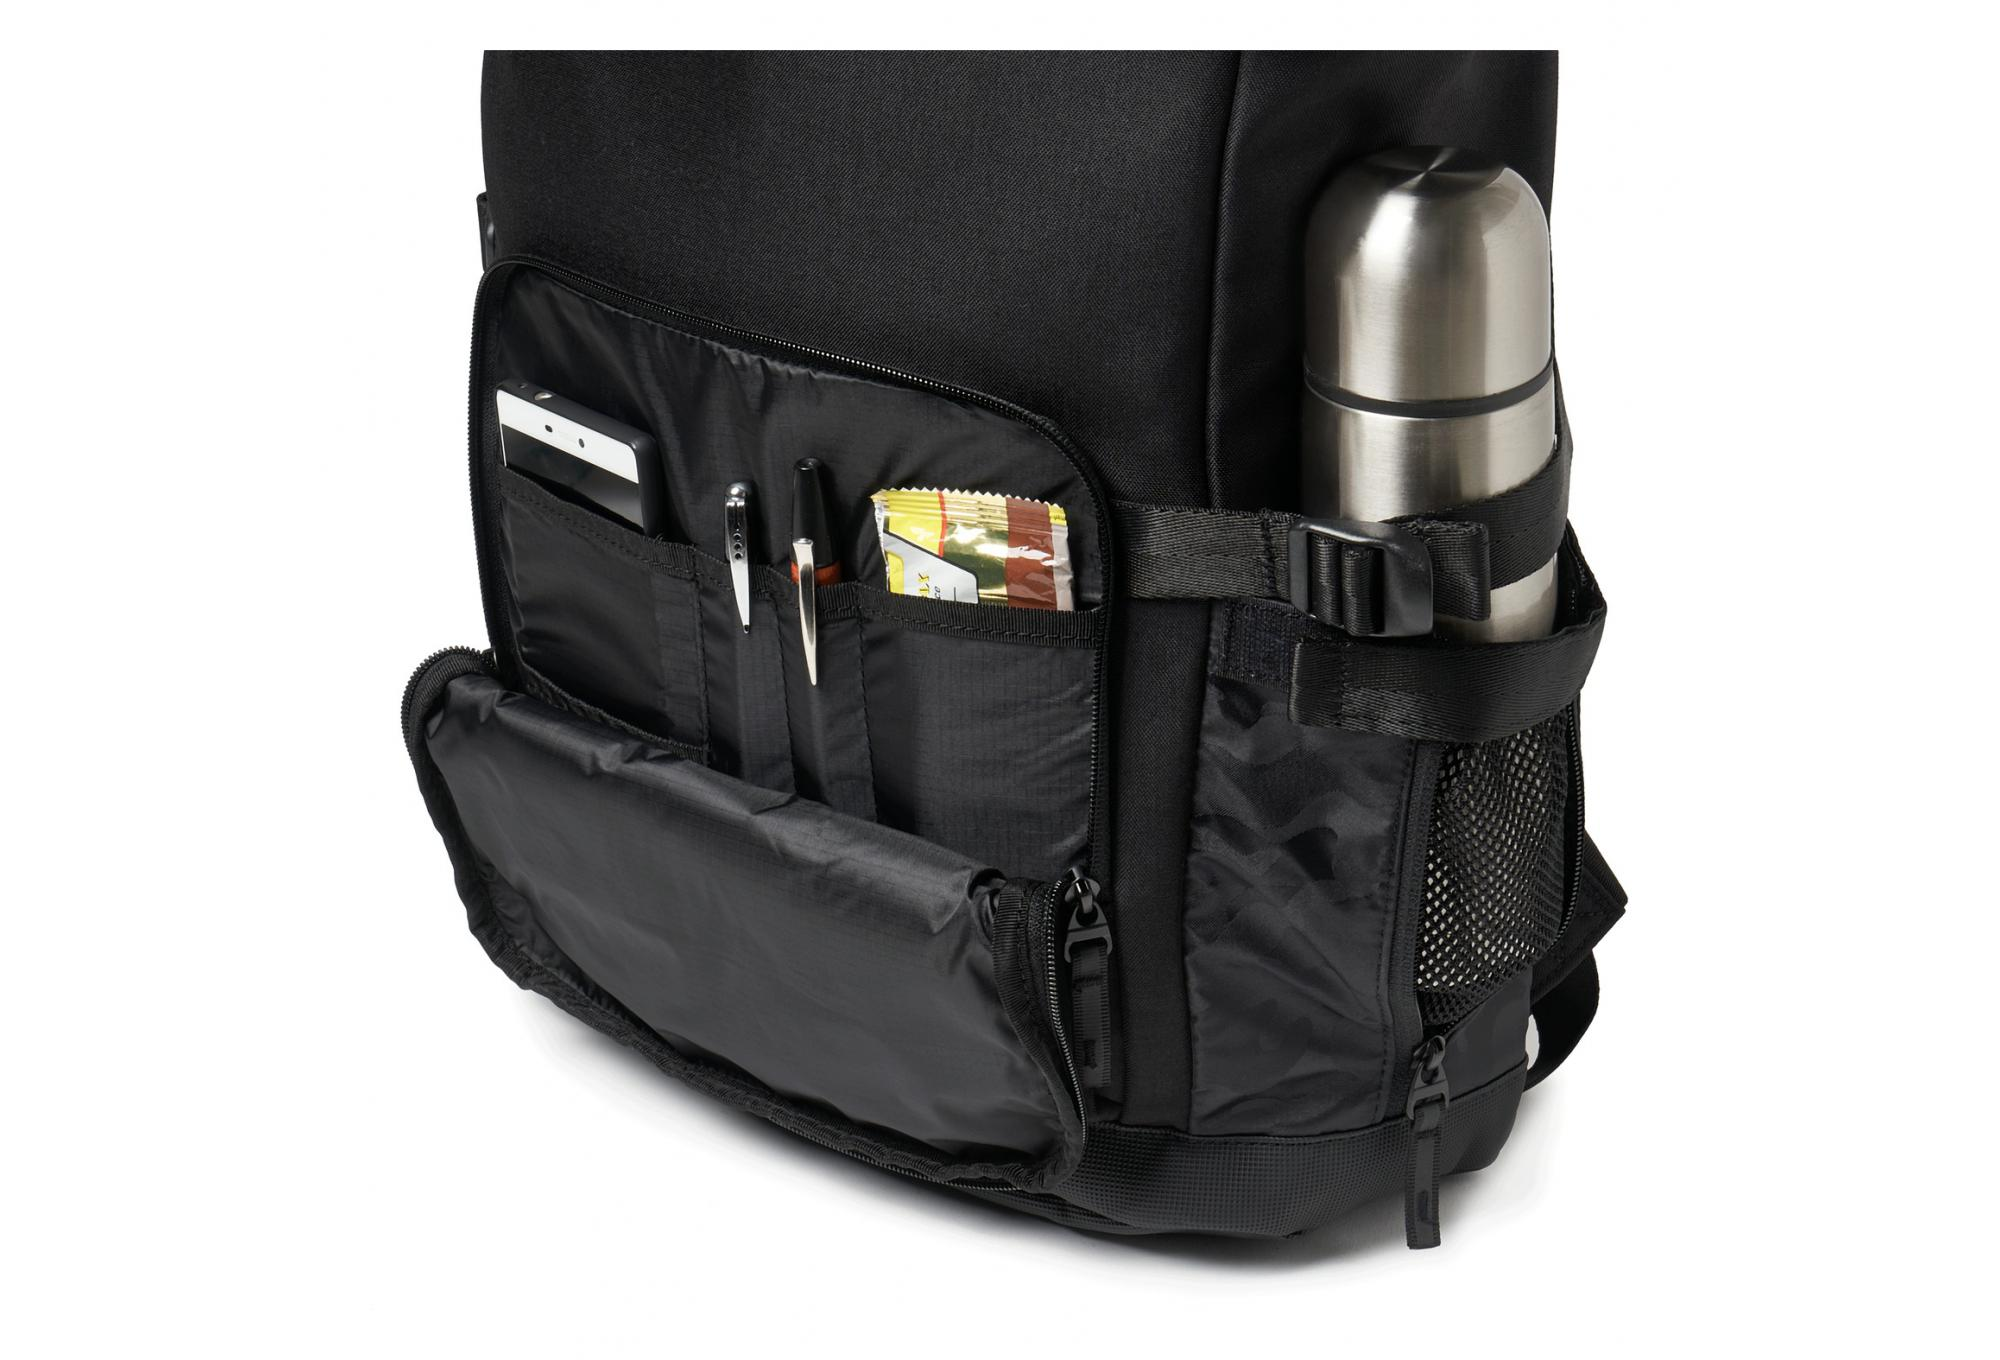 Sac à Dos Oakley Utility Rolled Up Noir |